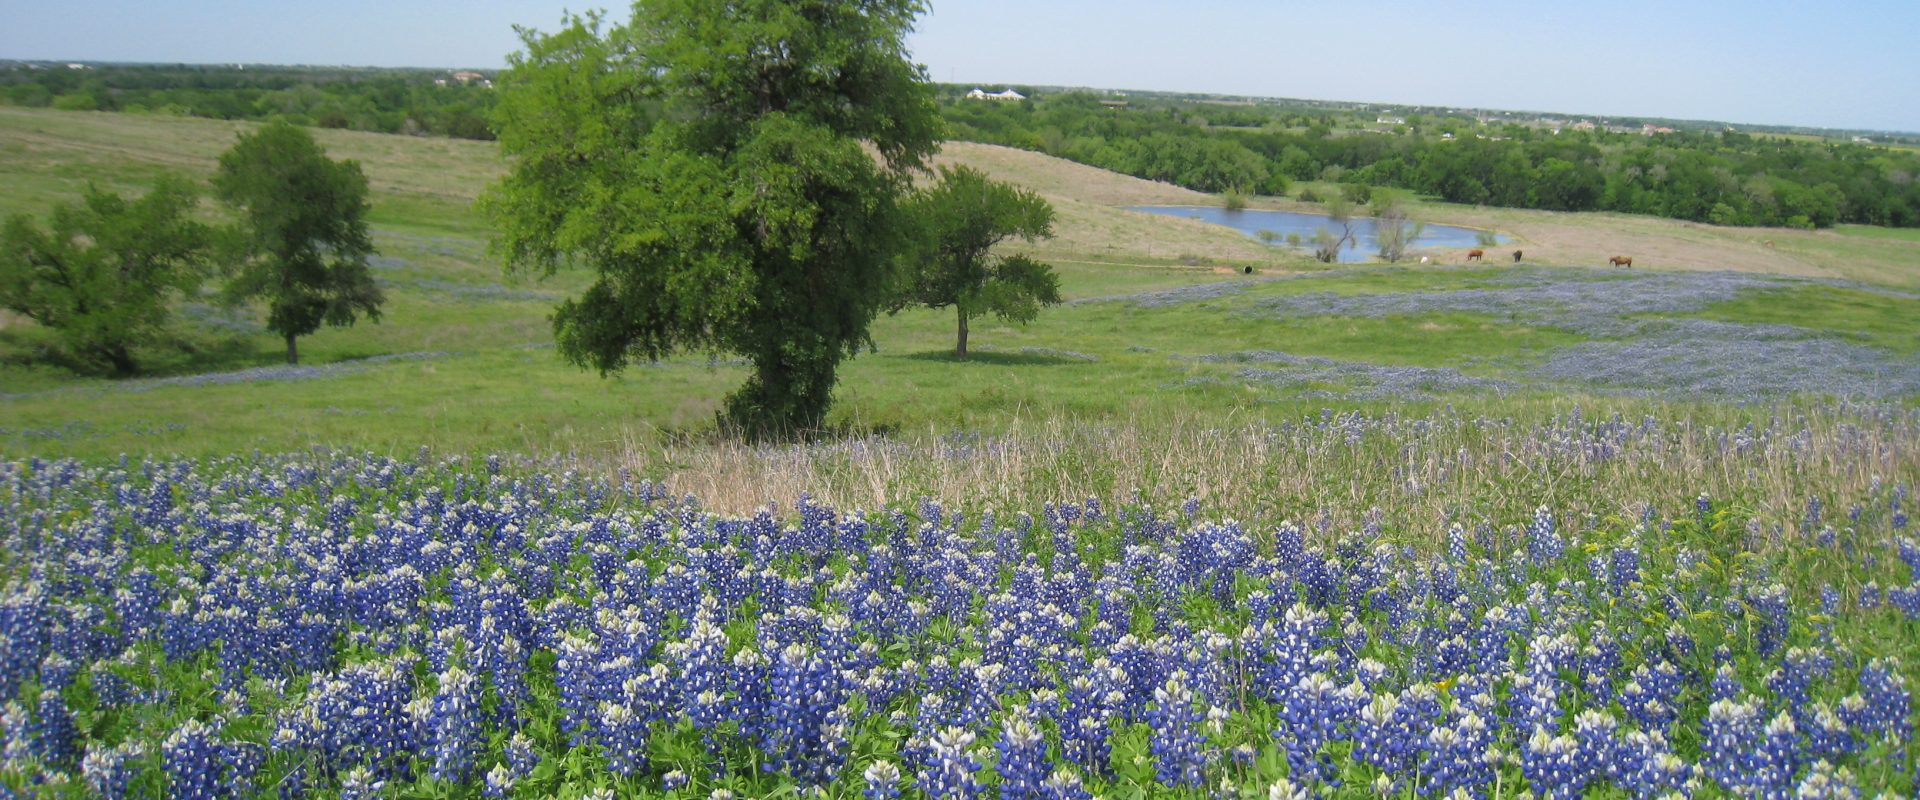 Ranchers' and Landowners' Association of Texas Candidate  Forum